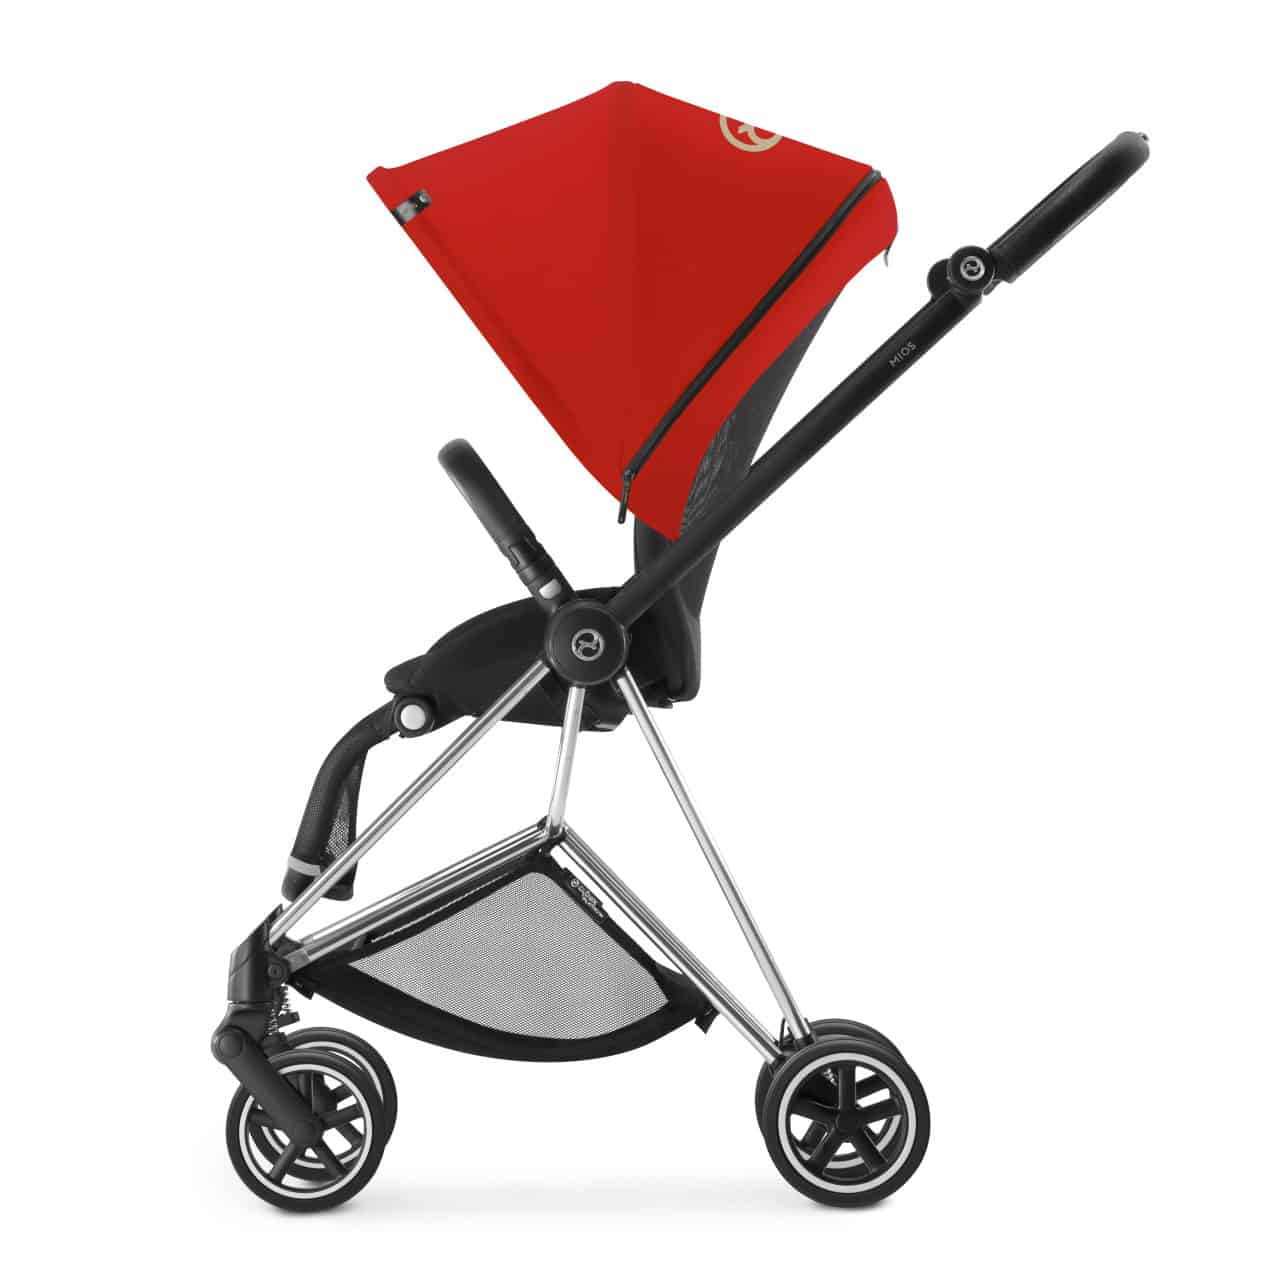 Stroller brand review: Cybex | Baby Bargains